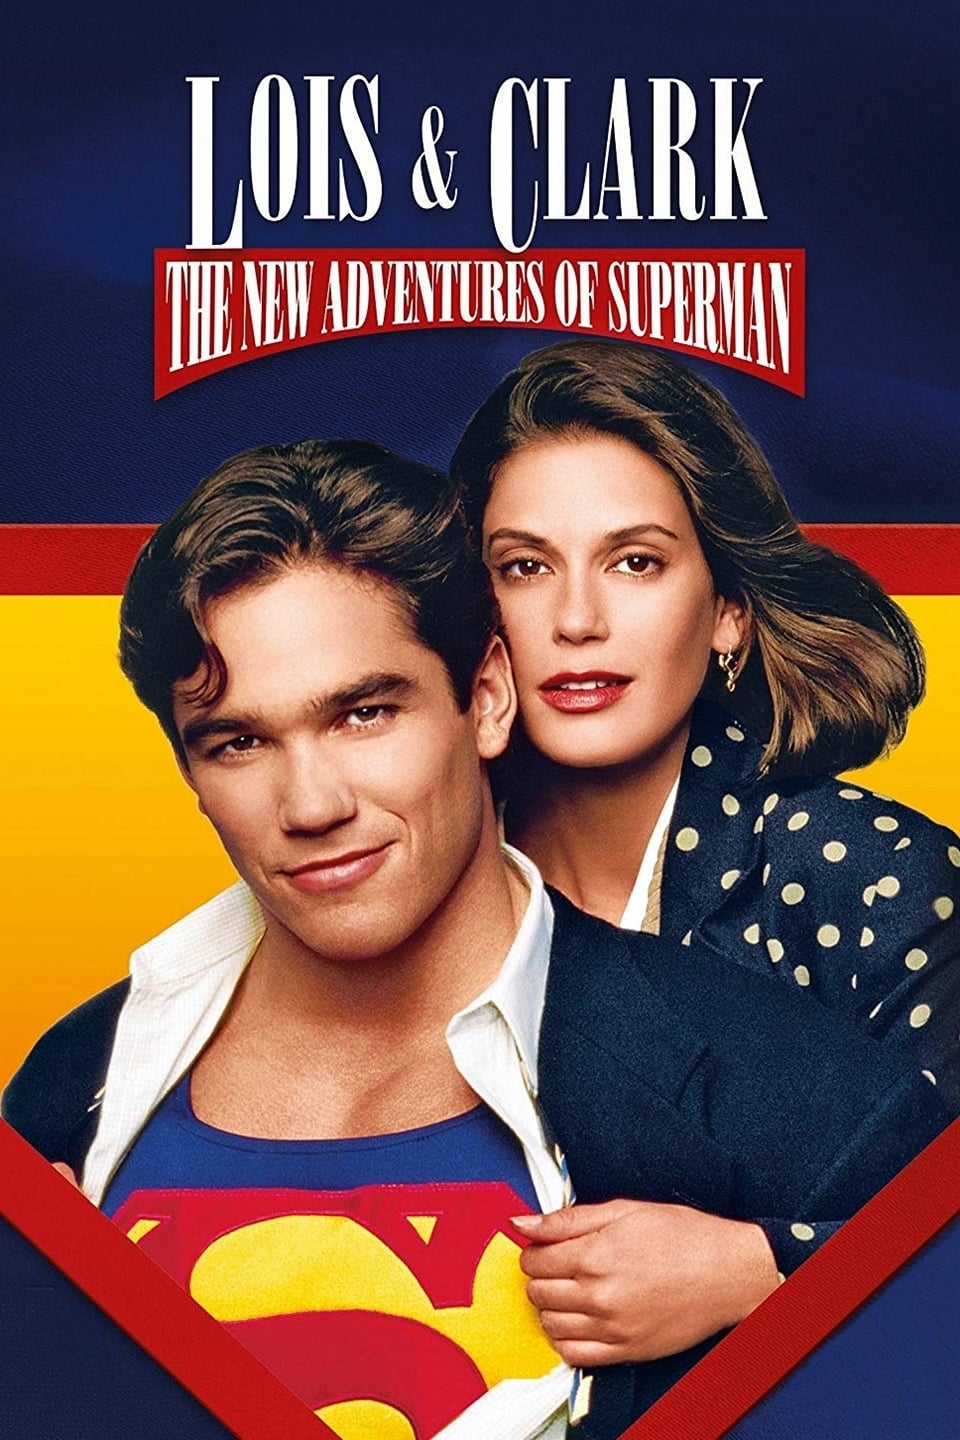 Lois & Clark - The New Adventures of Superman